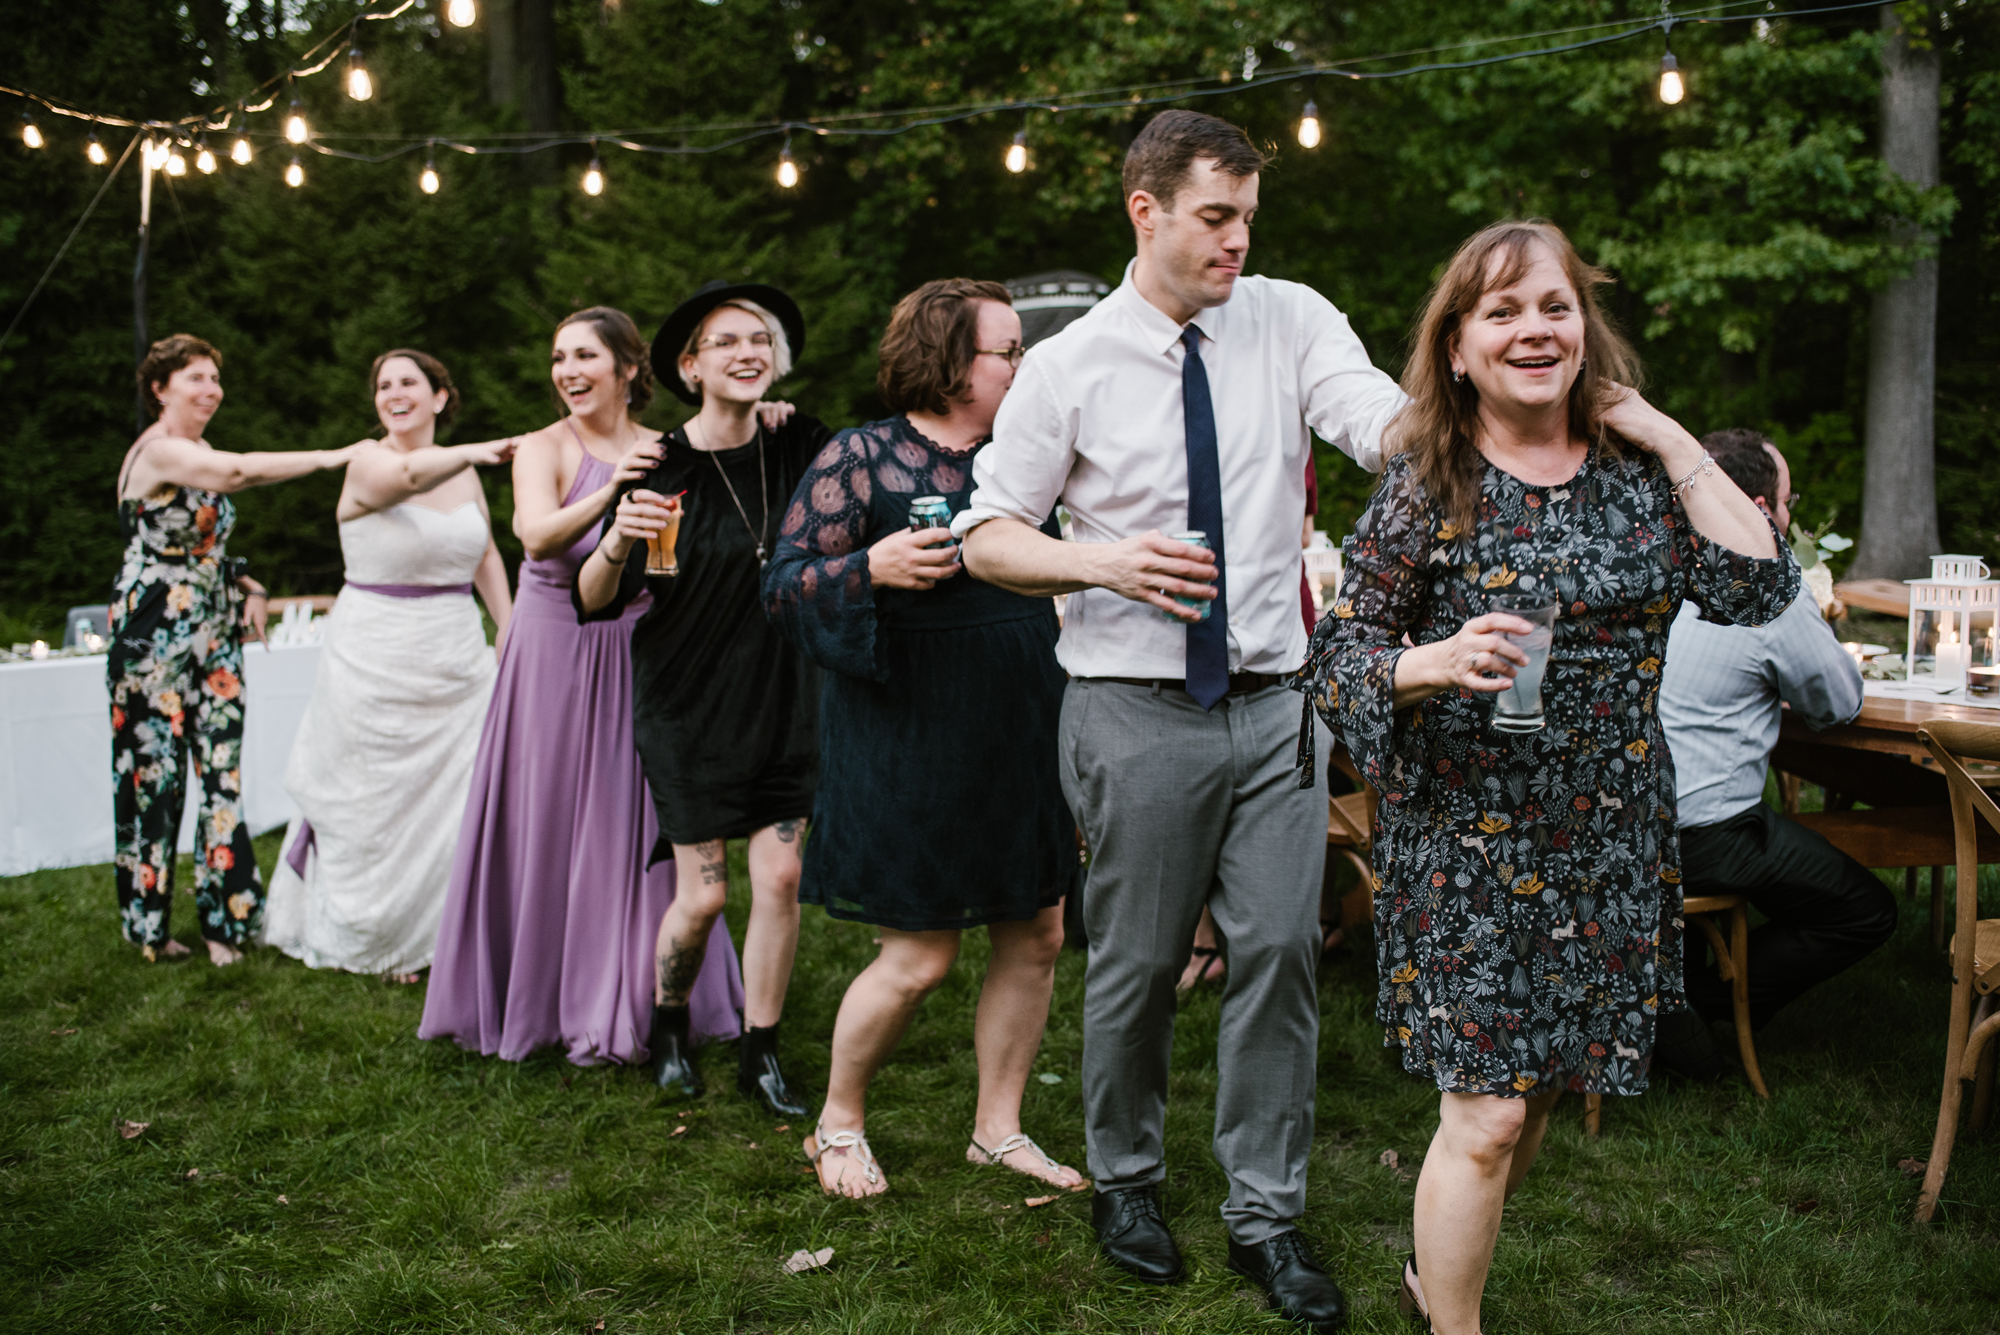 sawyer-michigan-backyard-wedding-dancing-pictures-sydney-marie (11).jpg